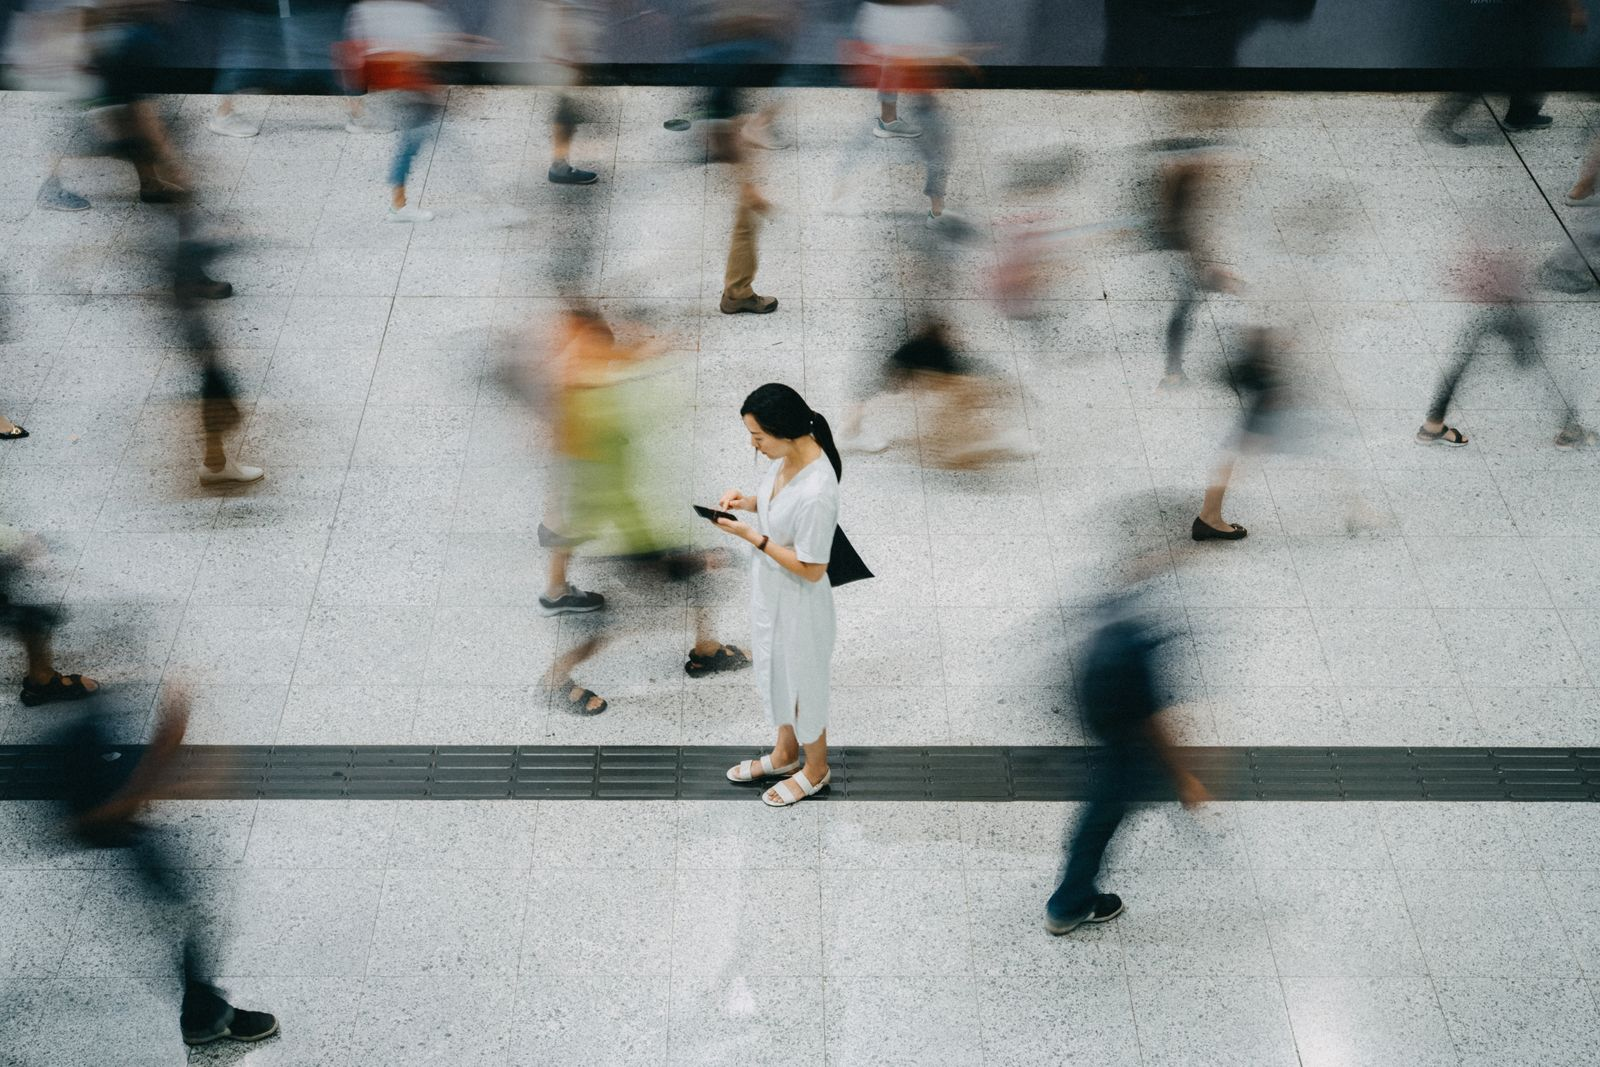 Young Asian woman using smartphone surrounded by commuters rushing by in subway station